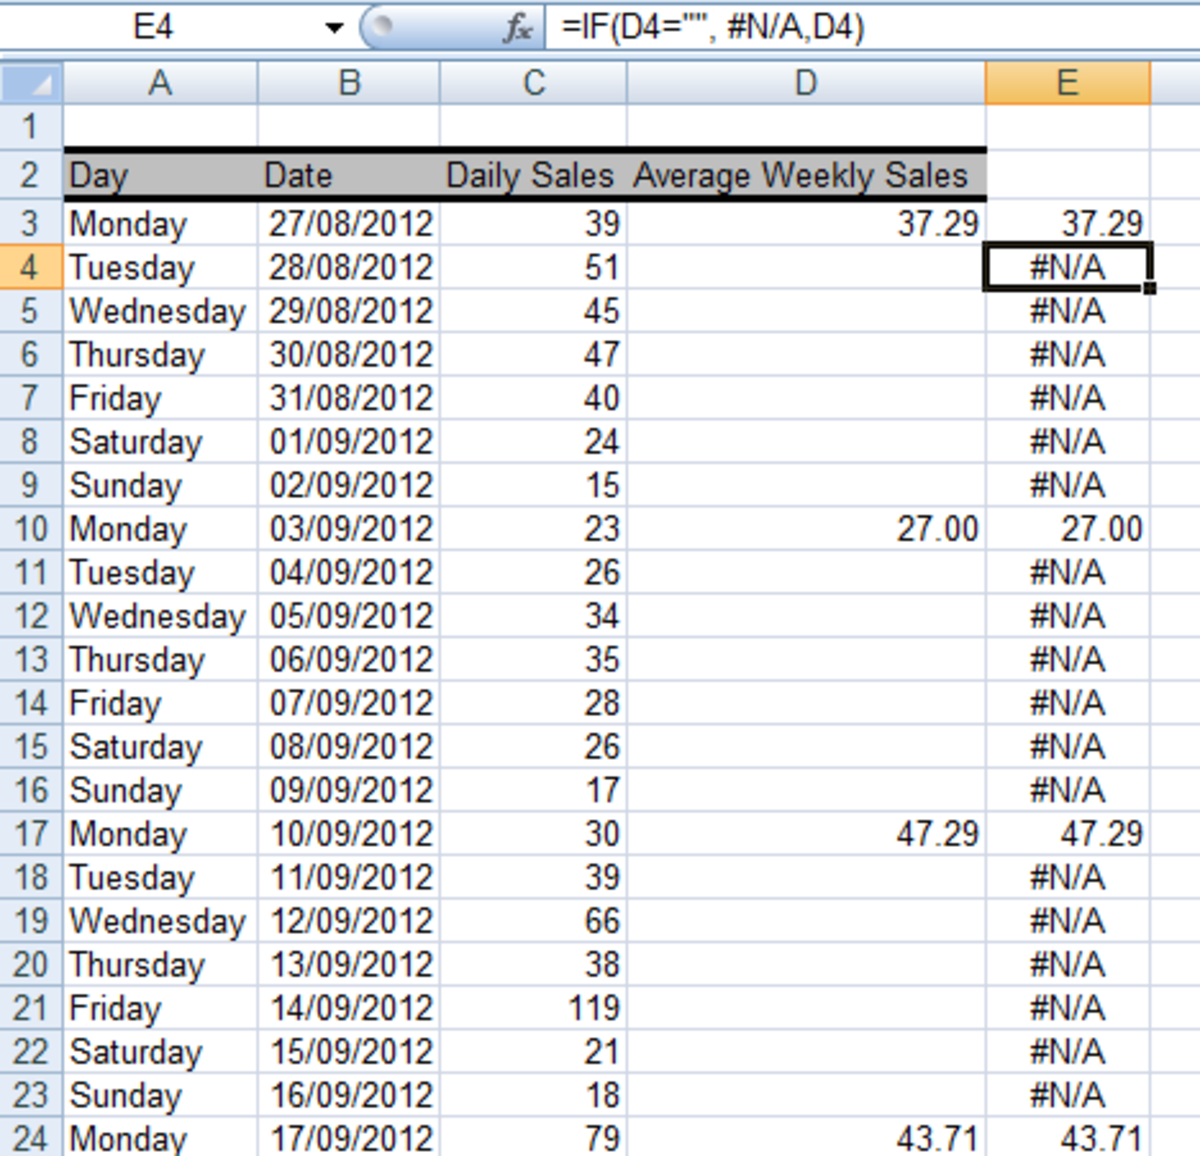 Ediblewildsus  Personable How To Get Excel  And  To Ignore Empty Cells In A Chart Or  With Great Using The If Function In A Formula To Convert Empty Cells To Na With Attractive Text Formula In Excel  Also Pictures Of Excel In Addition Excel For Windows  And Free Expense Report Template Excel As Well As Excel Empty Cell Test Additionally Sample Excel Payroll Spreadsheet From Turbofuturecom With Ediblewildsus  Great How To Get Excel  And  To Ignore Empty Cells In A Chart Or  With Attractive Using The If Function In A Formula To Convert Empty Cells To Na And Personable Text Formula In Excel  Also Pictures Of Excel In Addition Excel For Windows  From Turbofuturecom